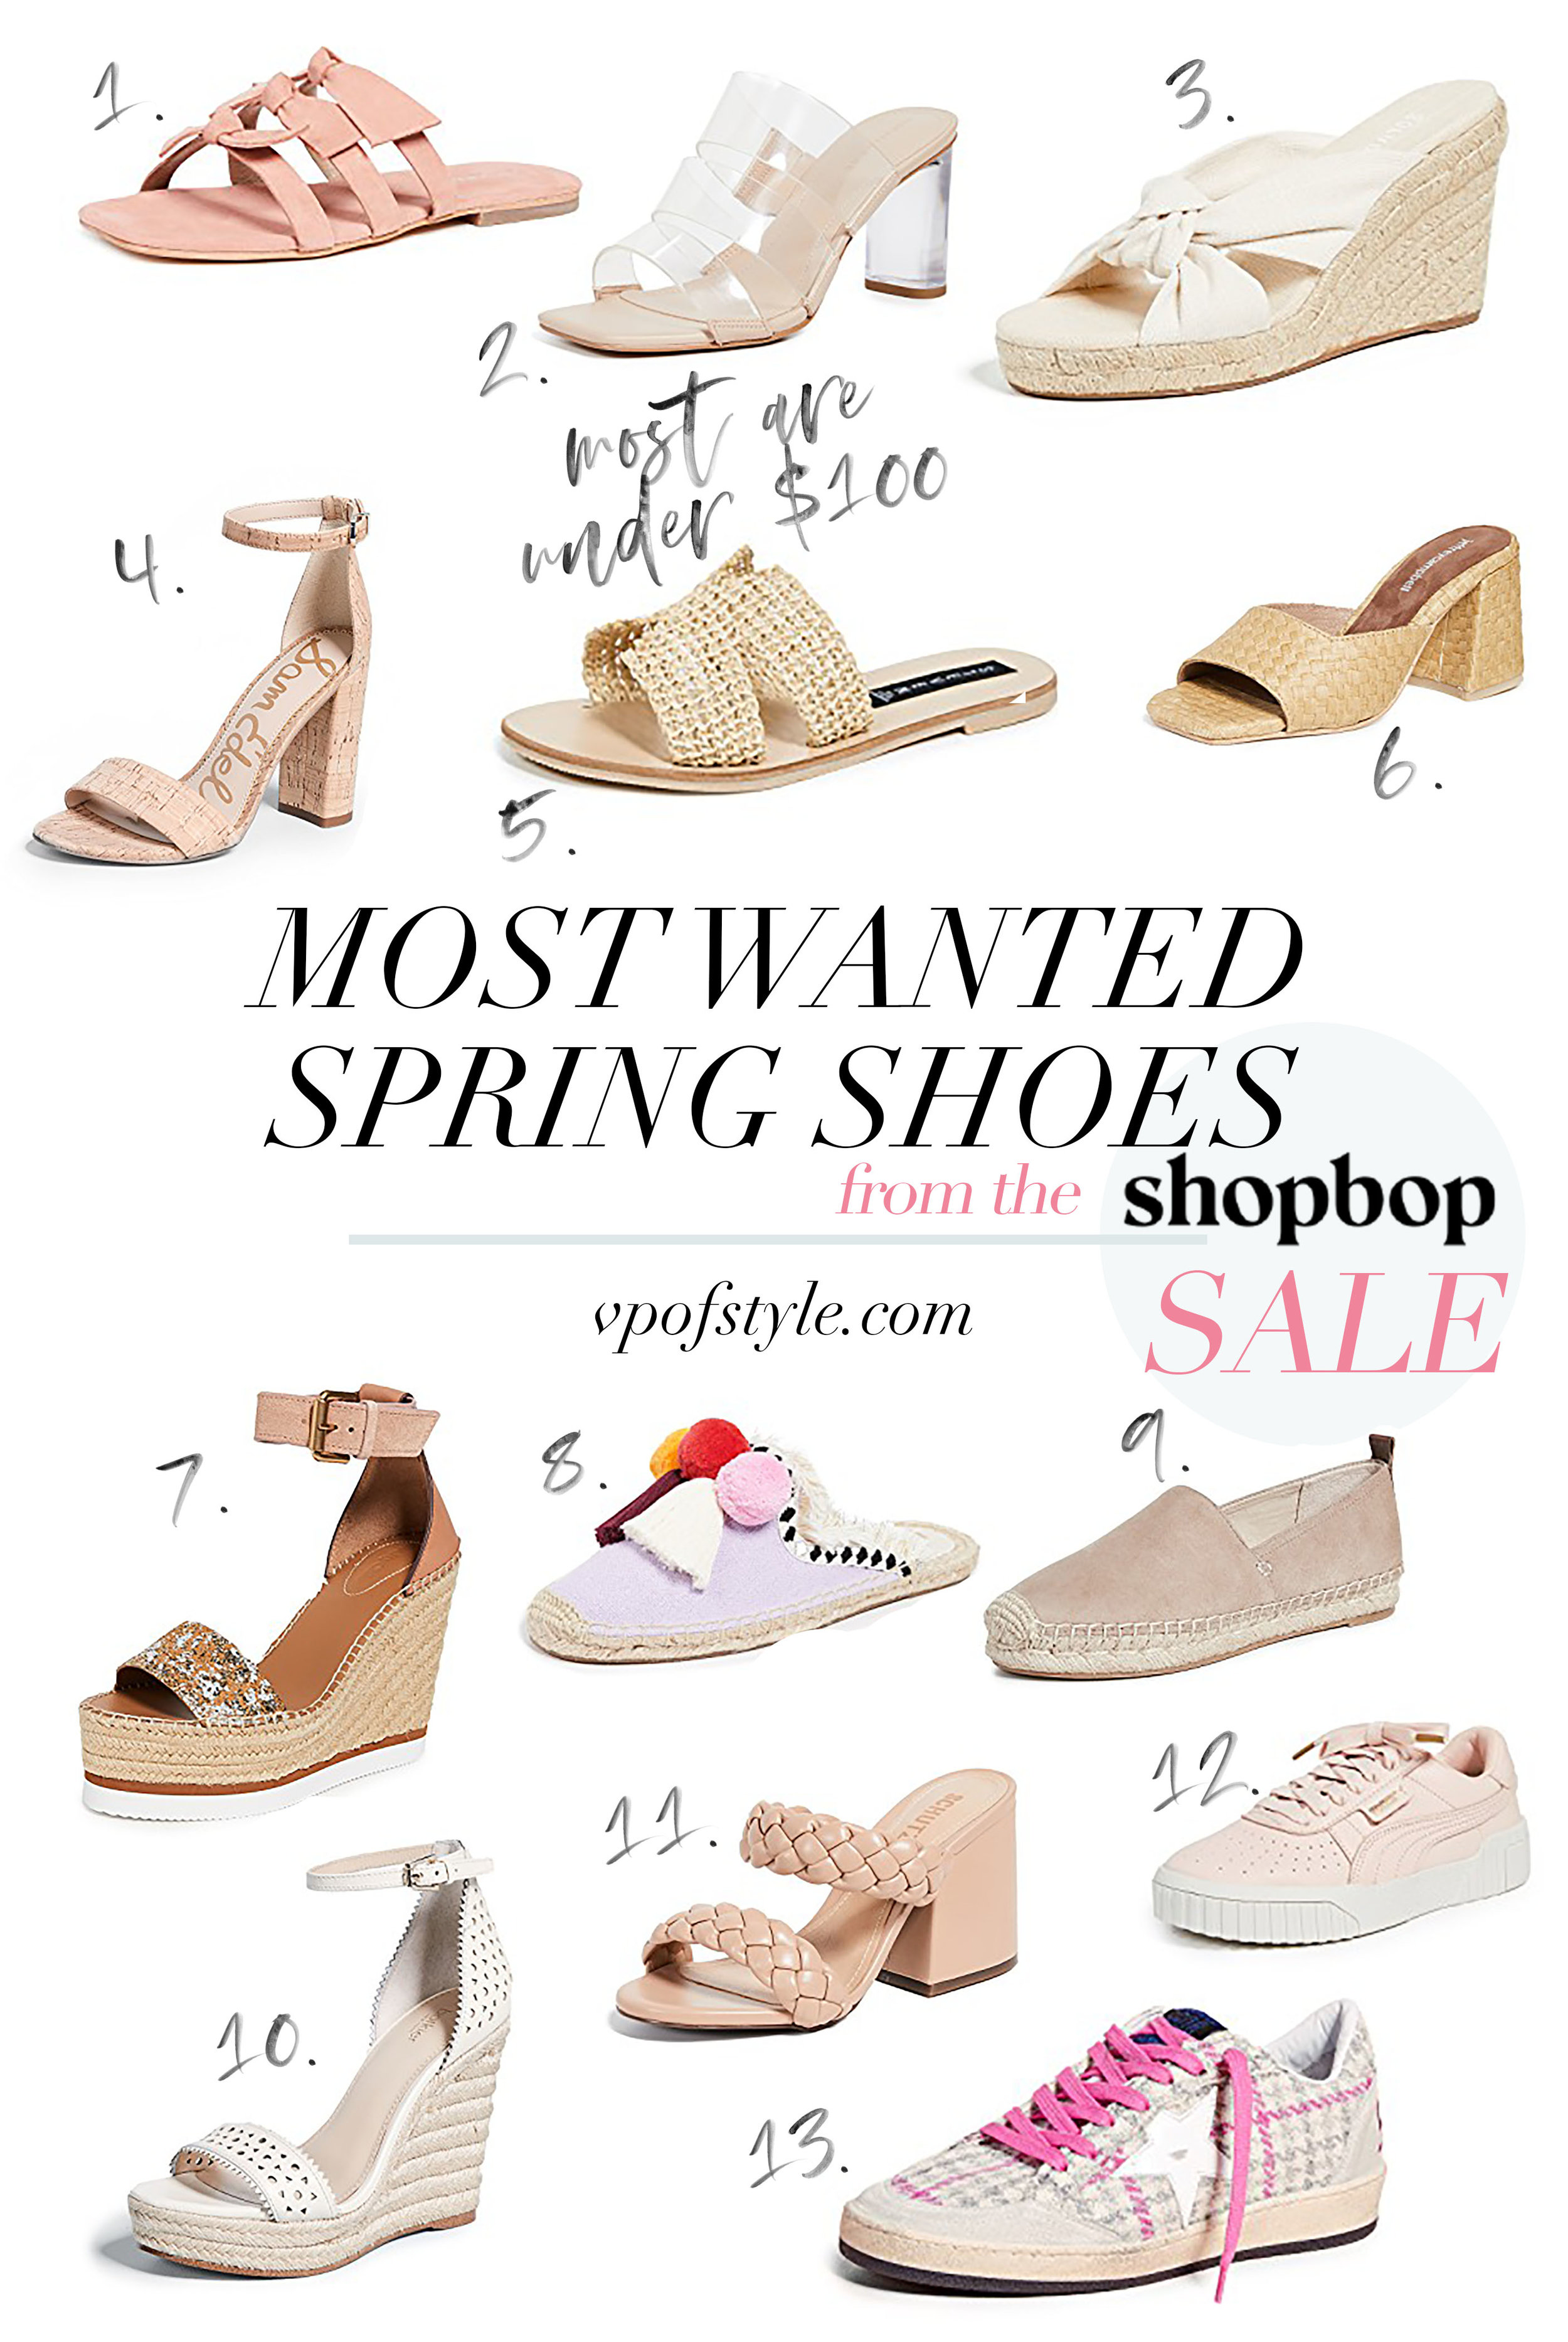 most wanted spring shoes from the shopbop sale